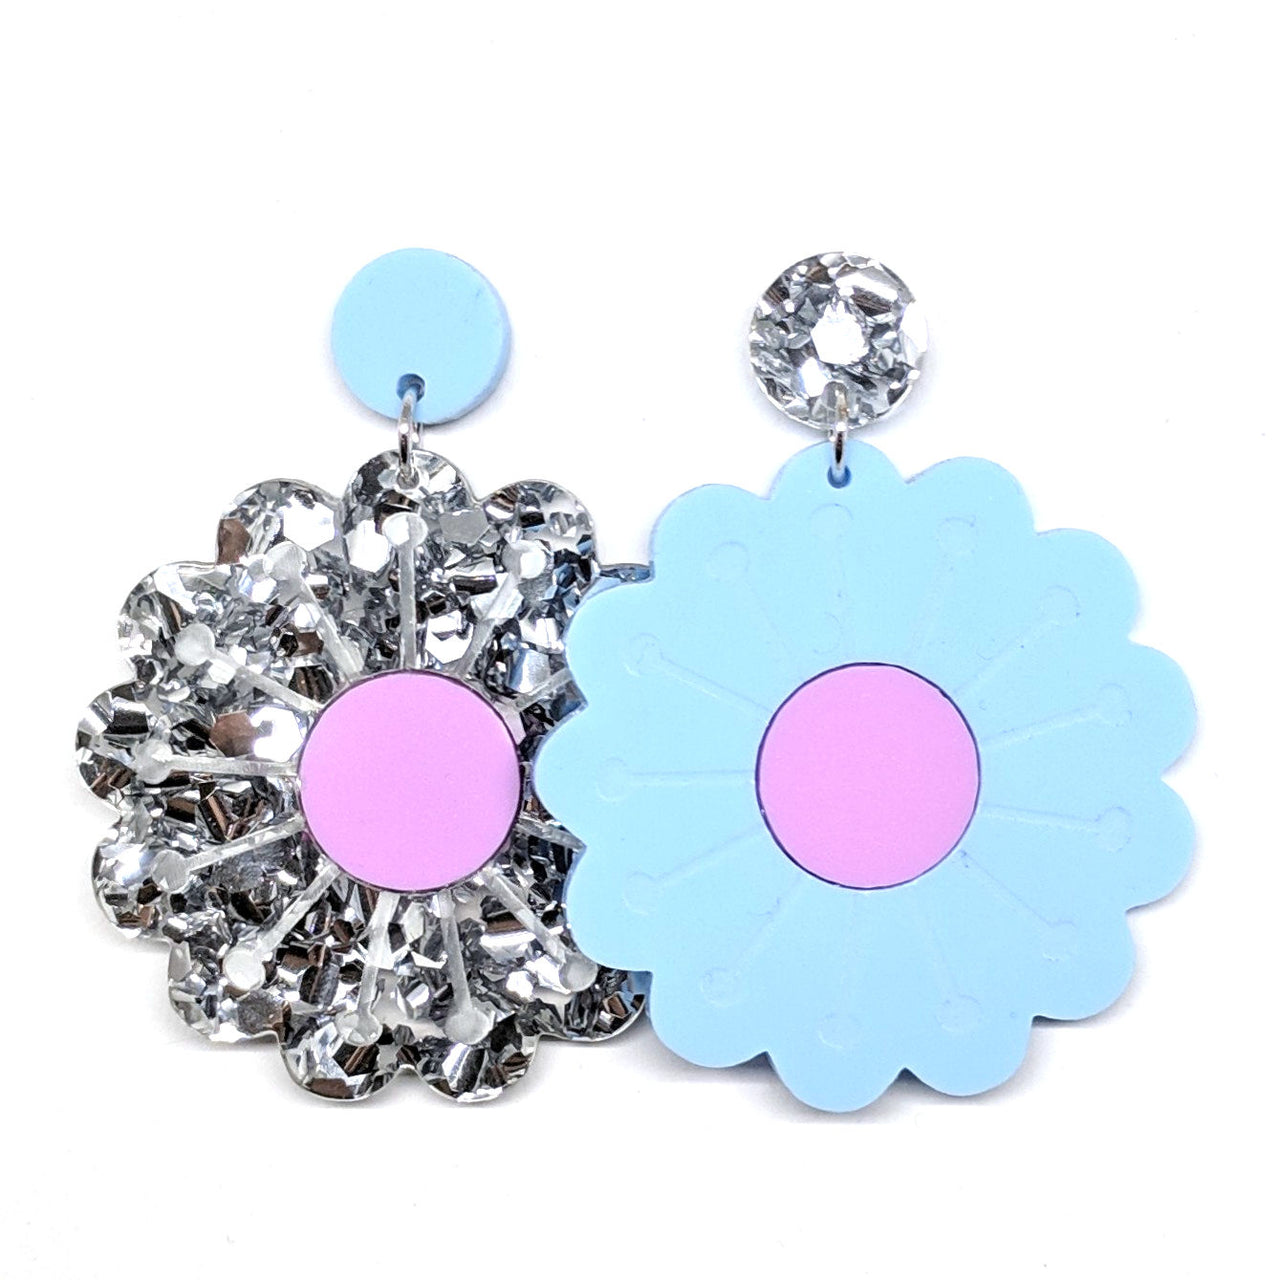 LG Poppy - Pastel Blue Chunky Silver and Pastel Plum